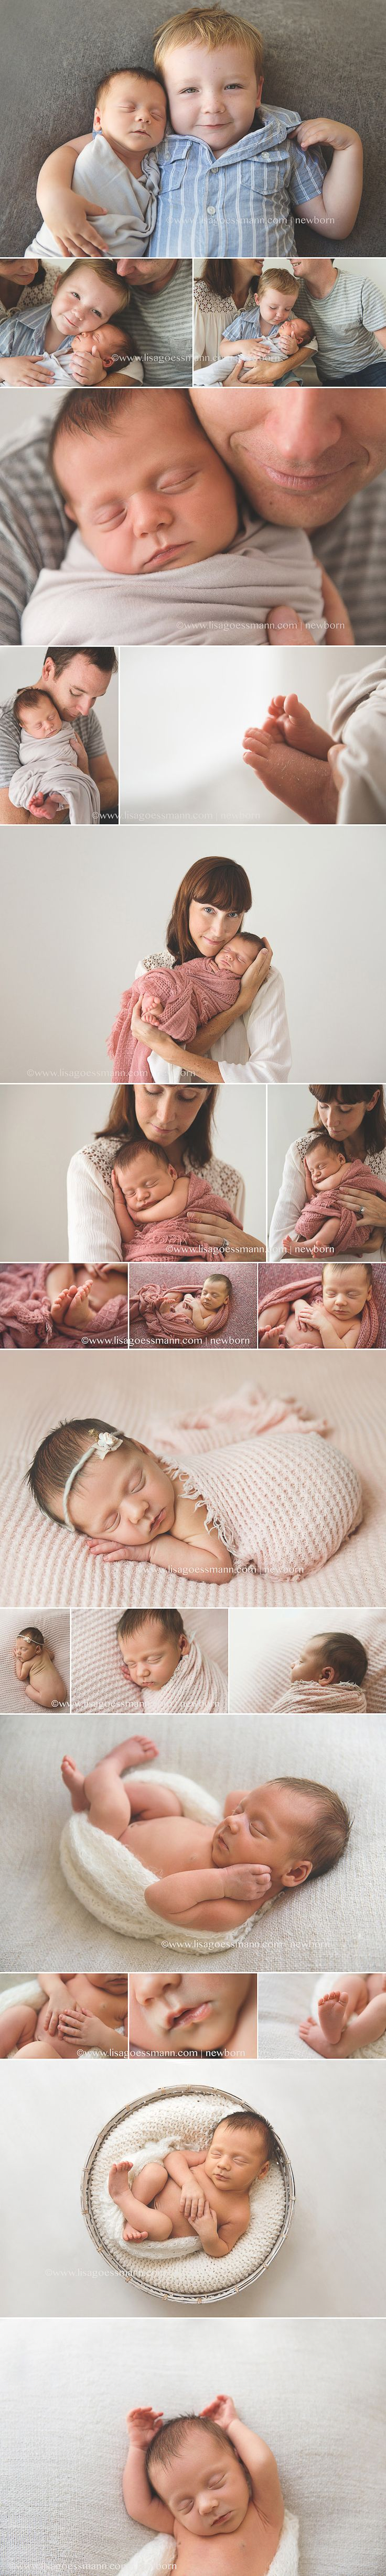 17 Best Images About Newborn Photography On Pinterest Babies